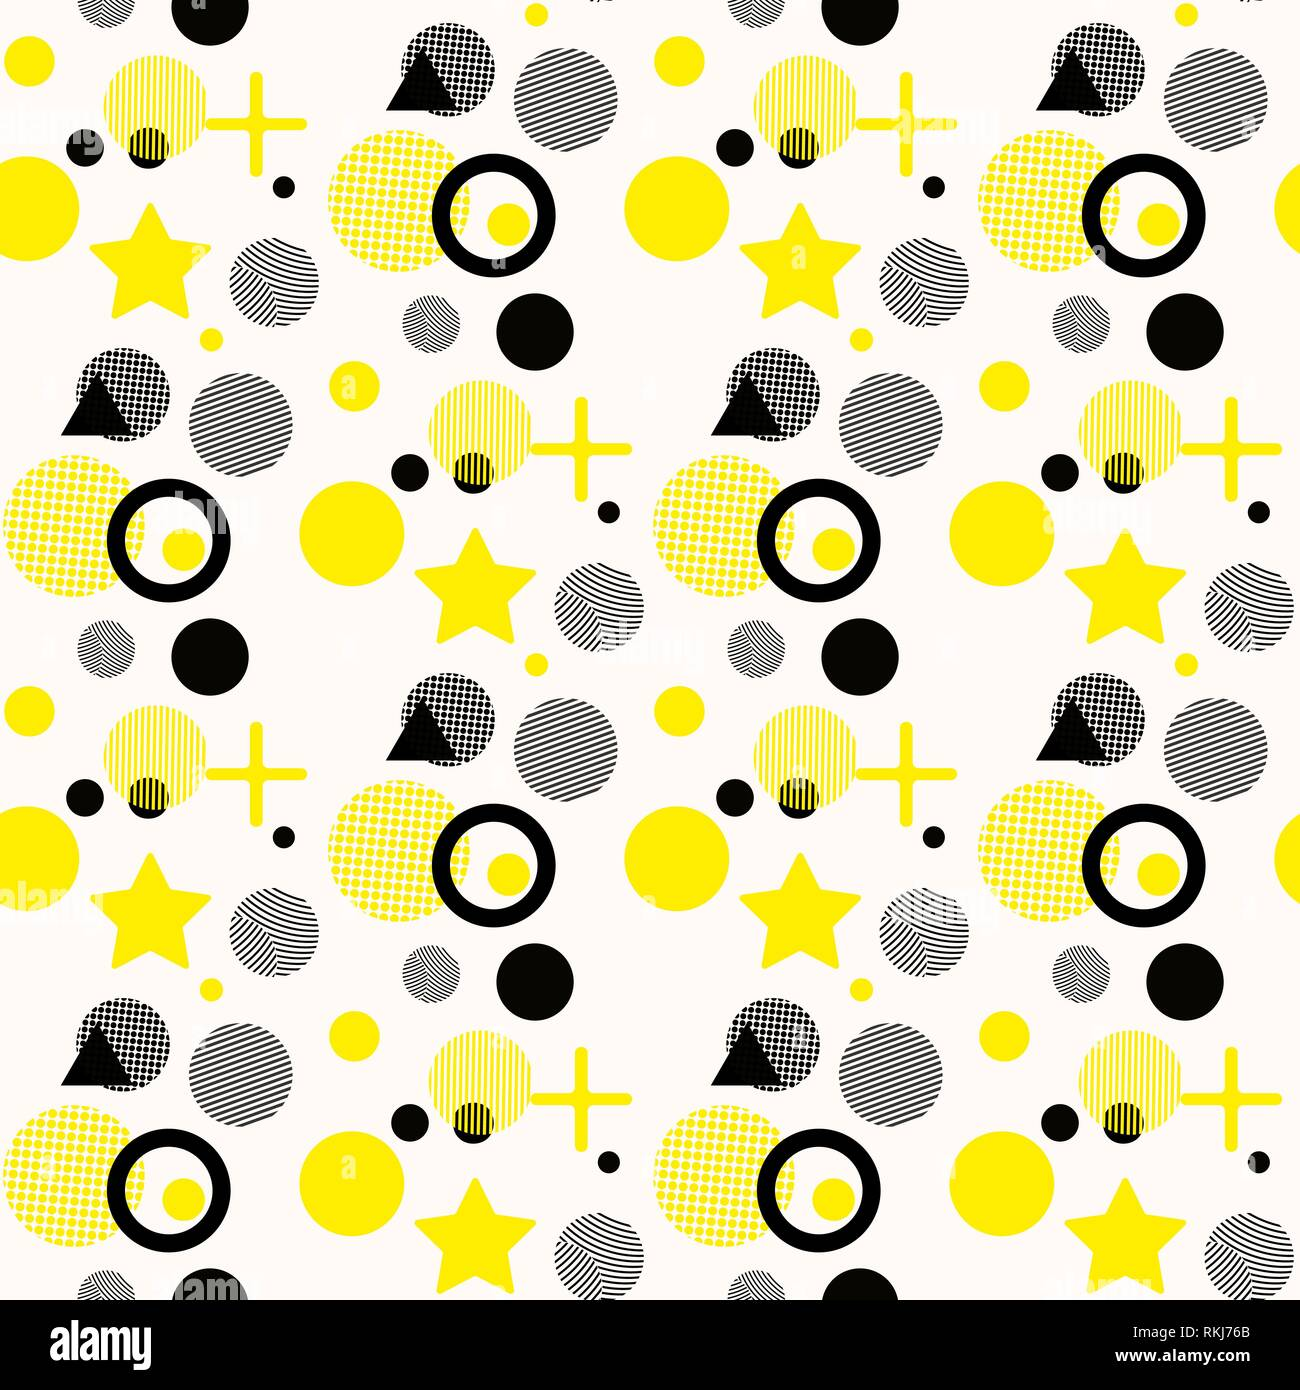 Universal Vector Fashion Geometric Seamless Pattern Flat Repeated Trendy Design Elements In Black White Yellow Memphis Style For Package Stock Vector Image Art Alamy